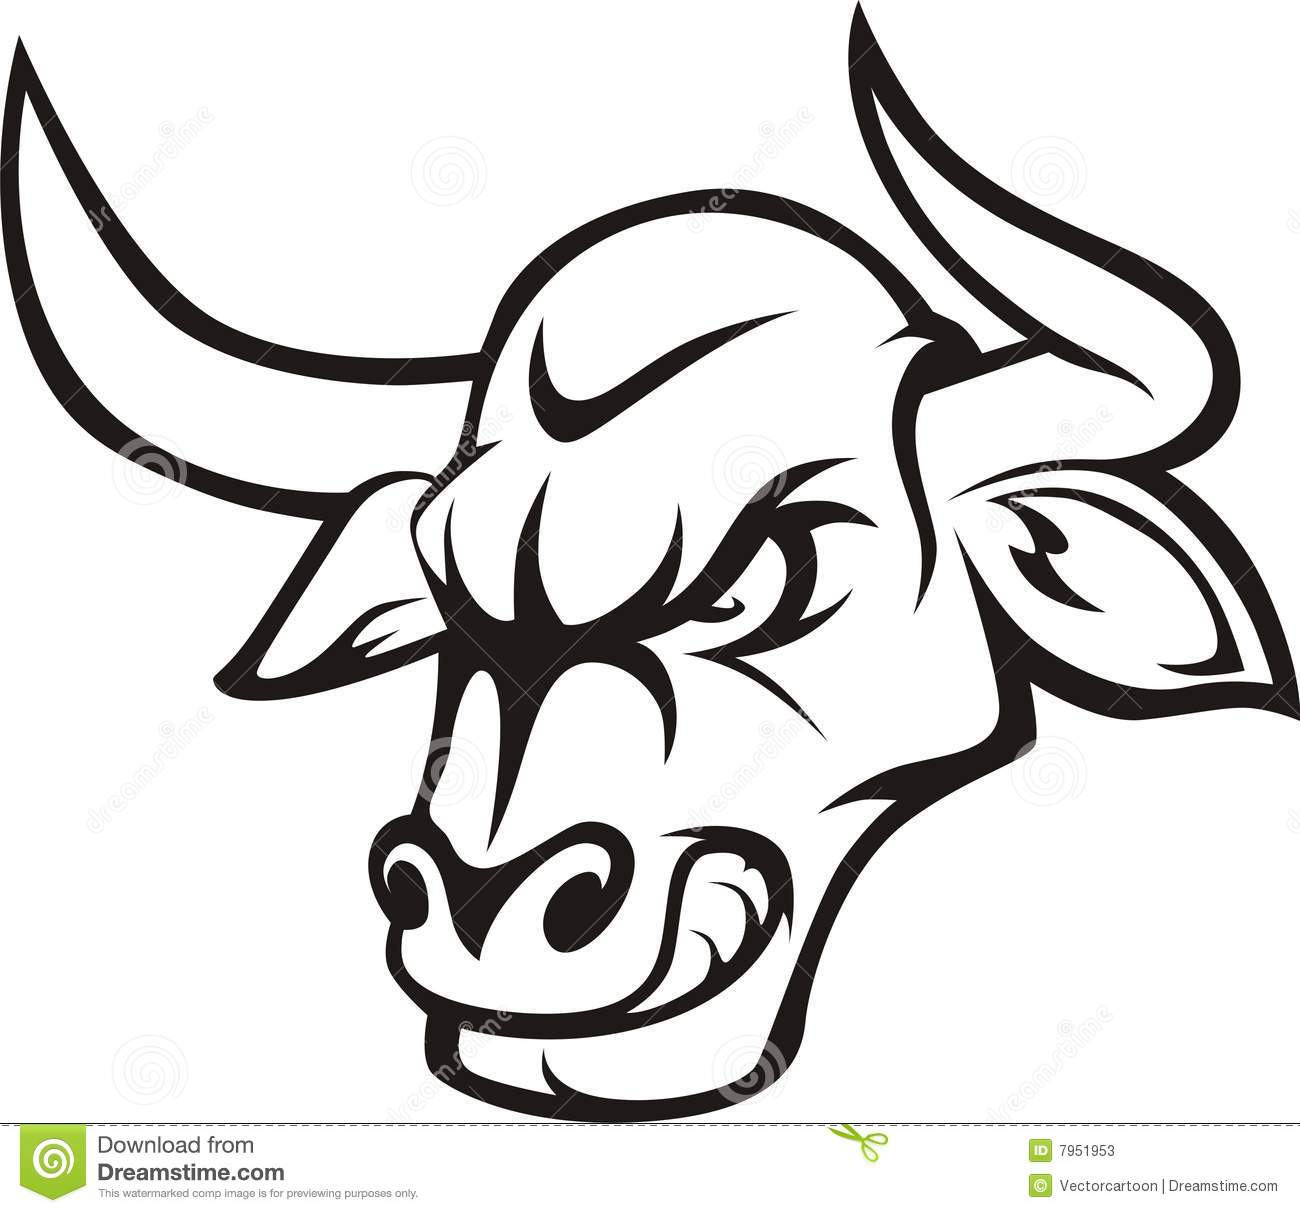 Bull clipart black and white. Free